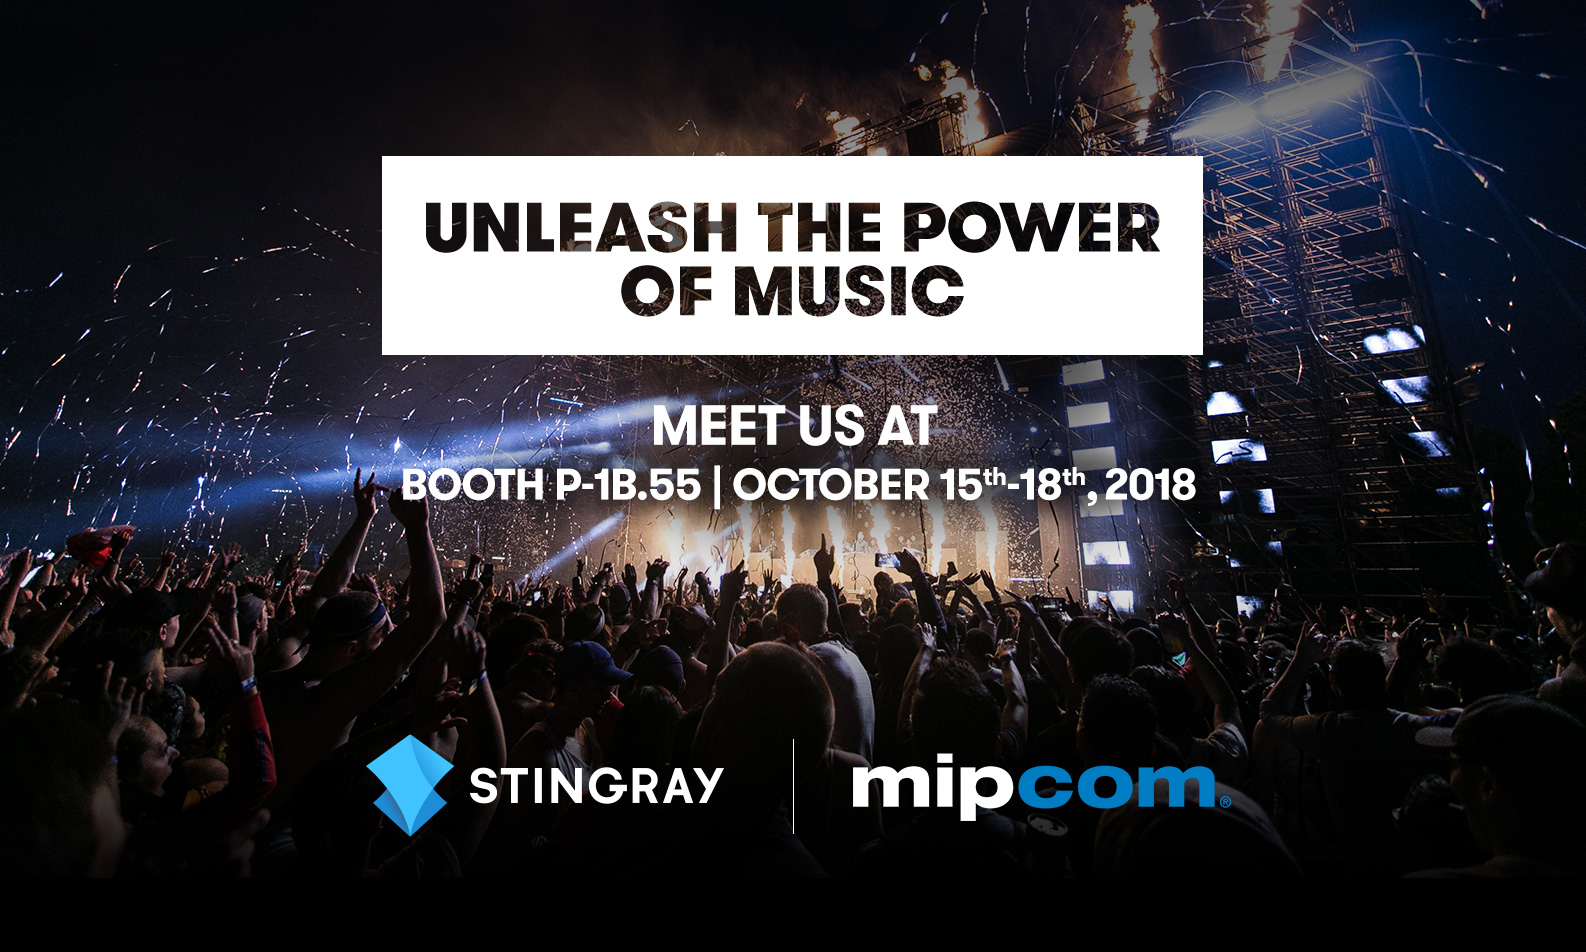 Stingray at MIPCOM 2018